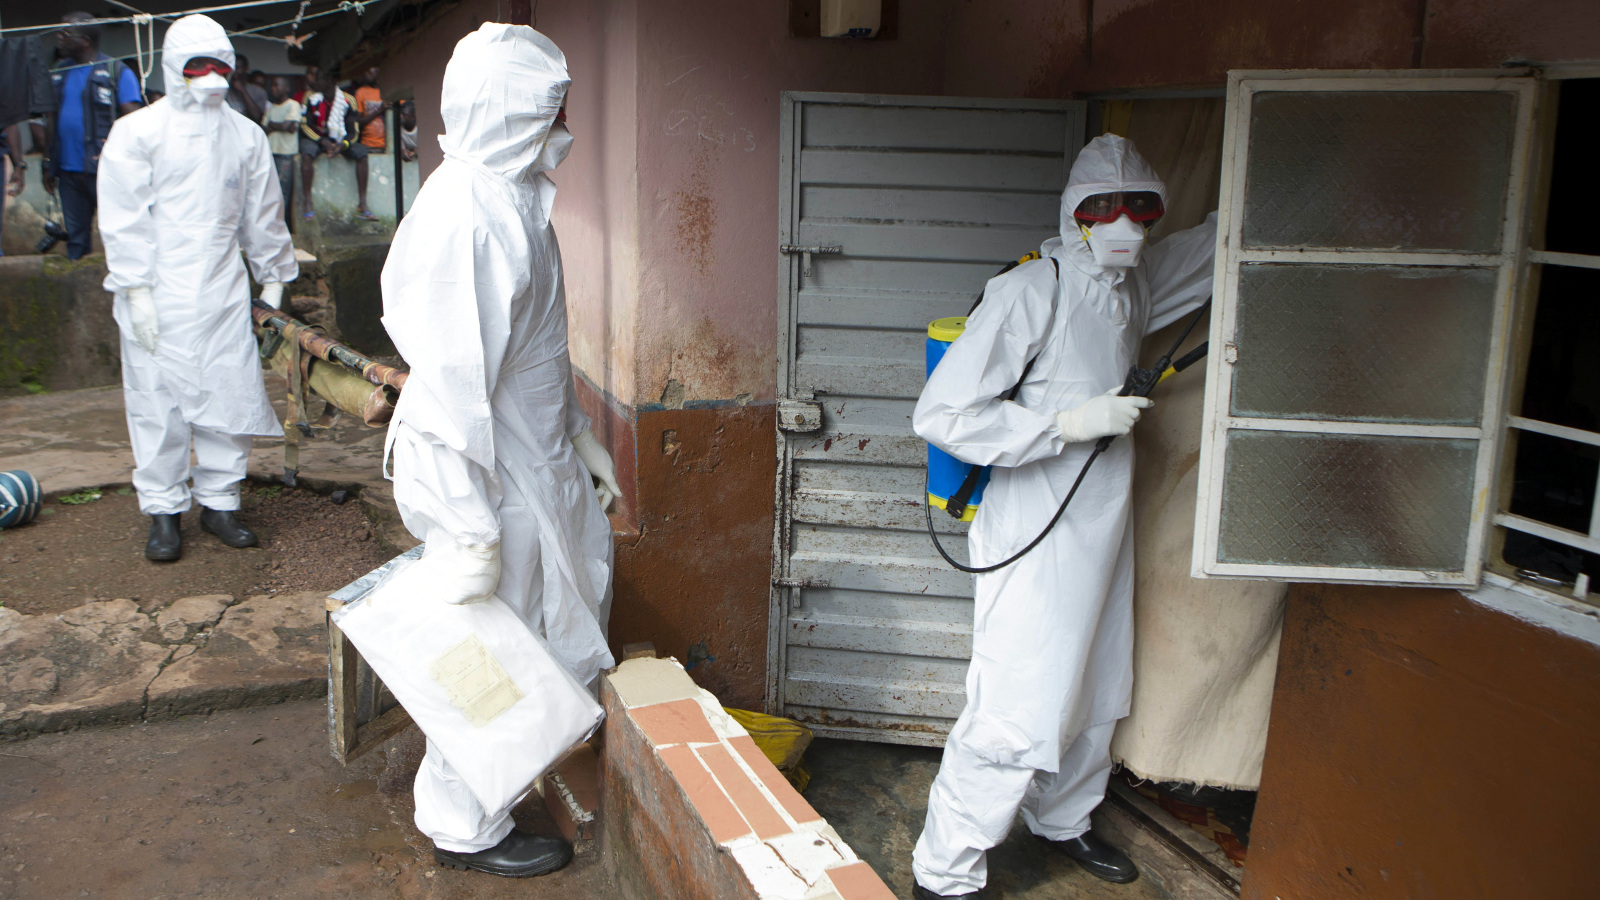 A burial team wearing protective clothing, prepare to enter the home a person suspected of having died of the Ebola virus, in Freetown September 28, 2014.